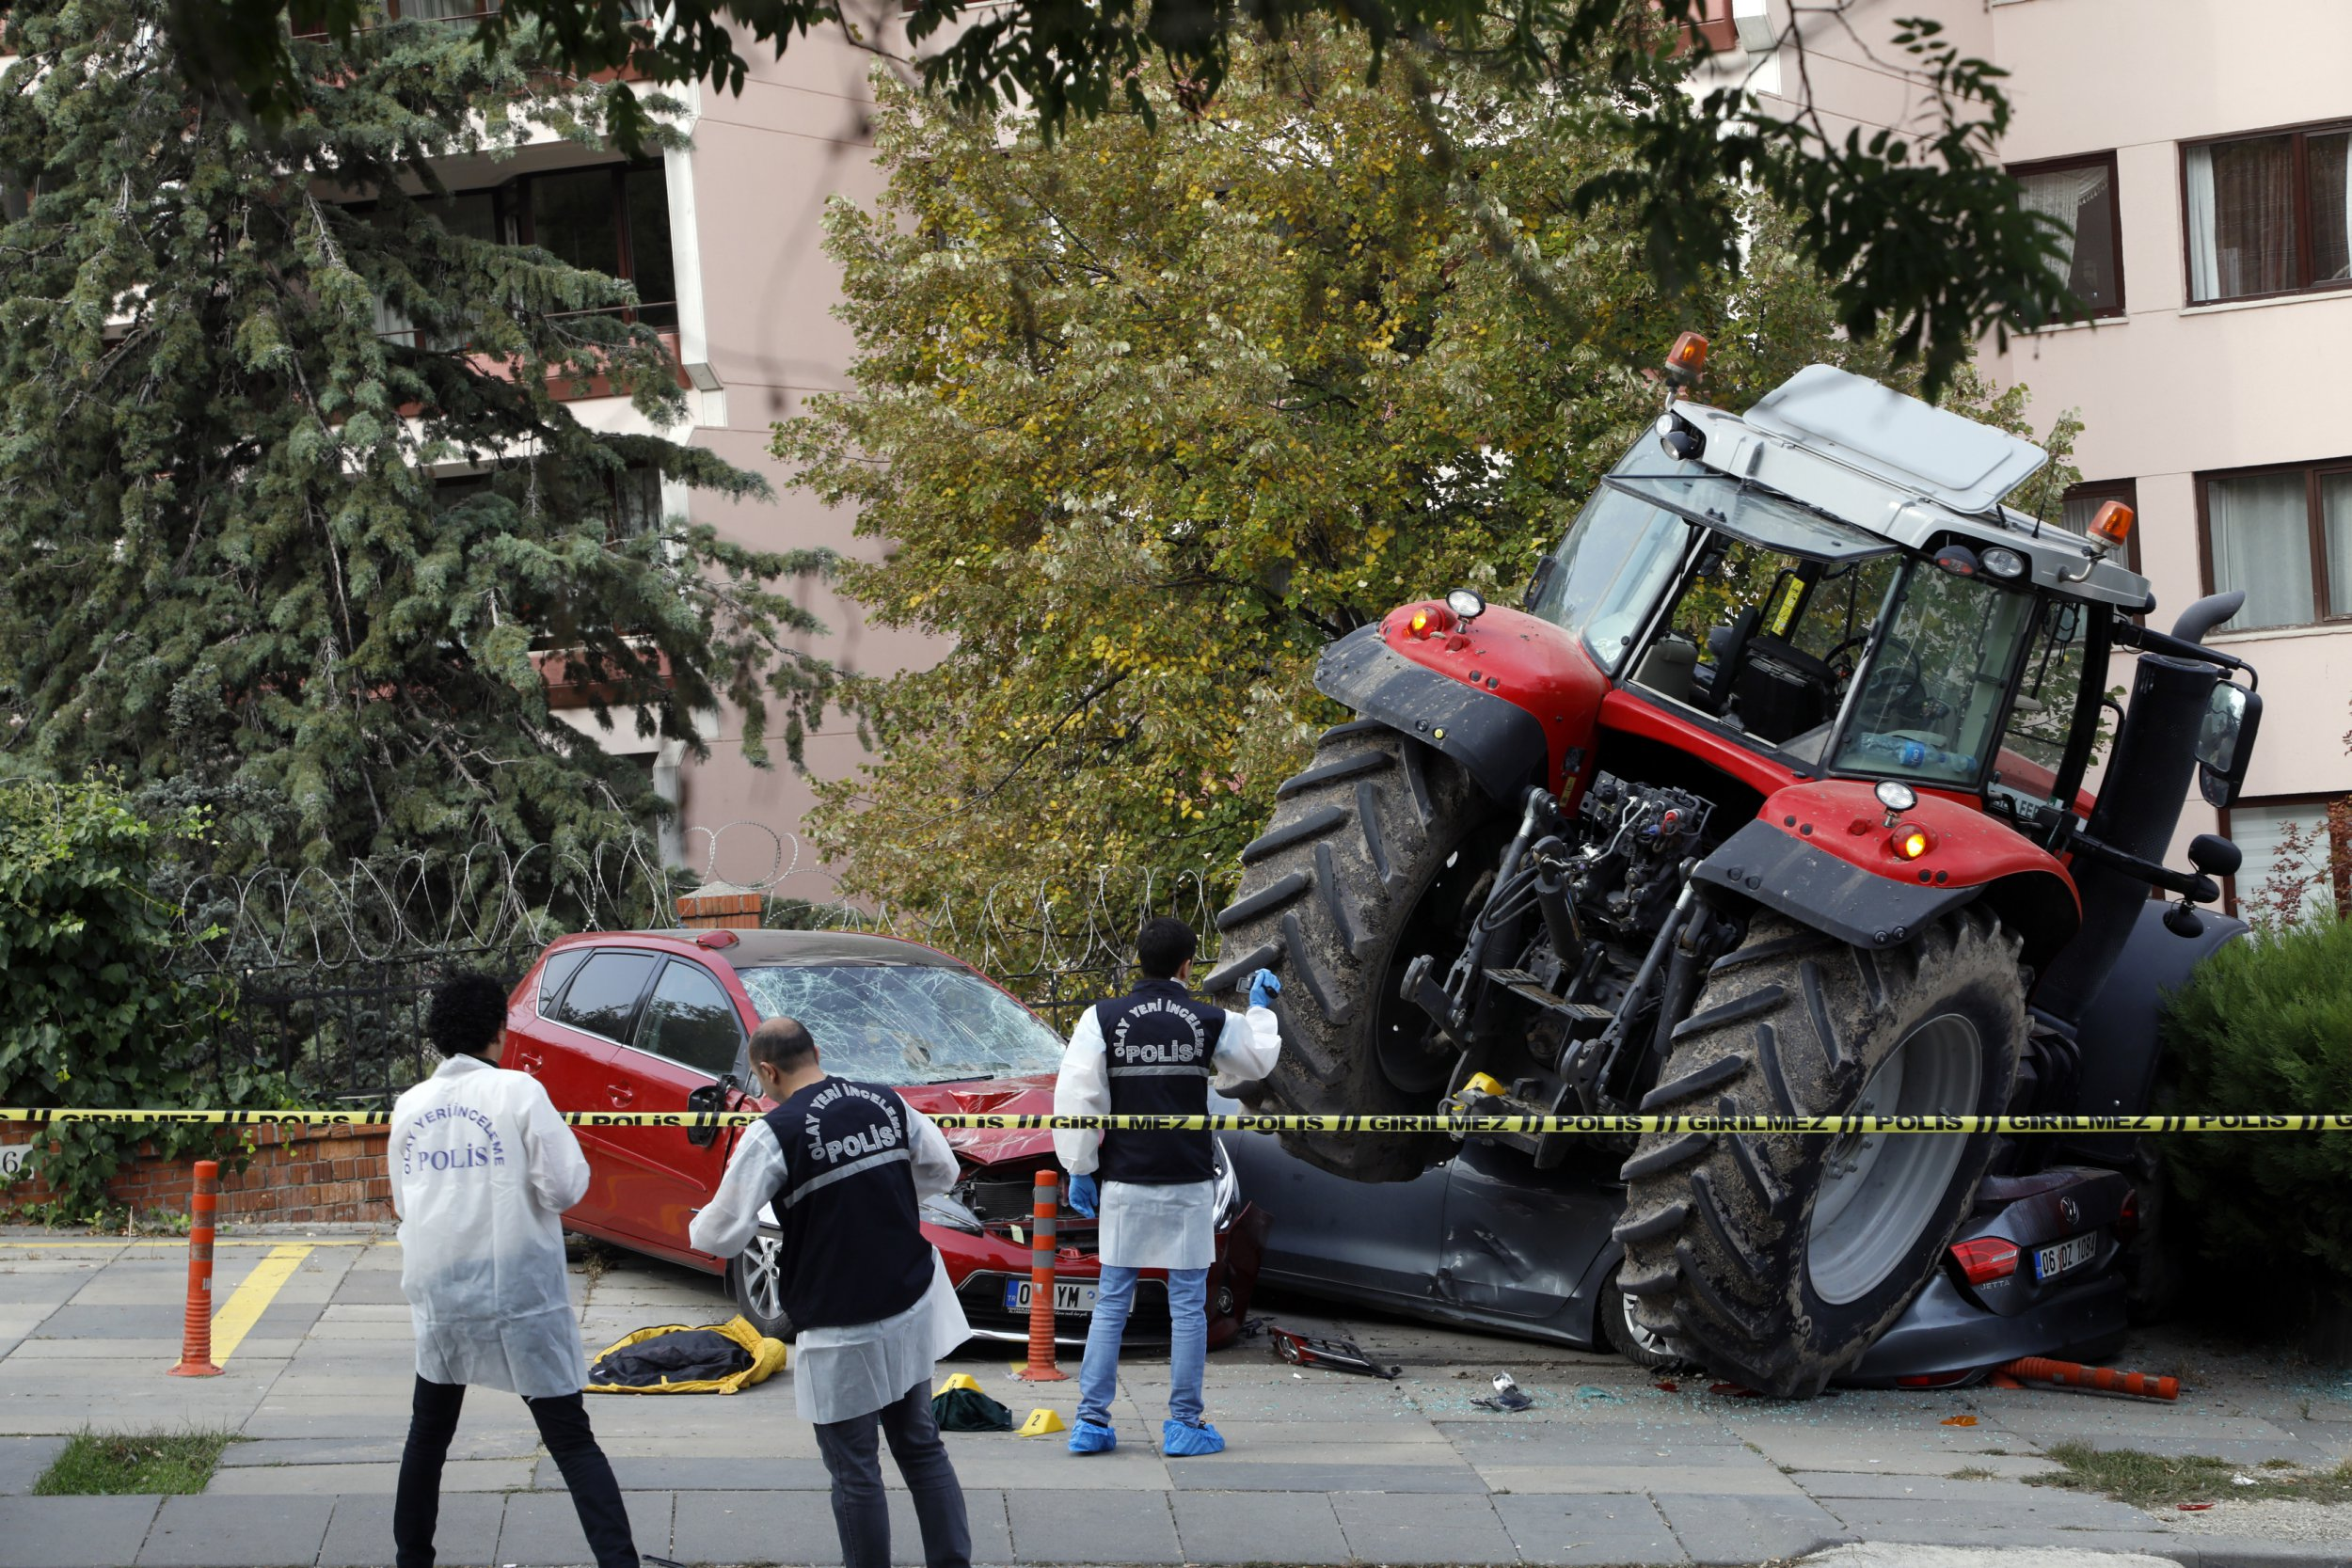 Forensic officers work at the scene after a tractor crashed into cars outside a residence, in Ankara, Turkey, Tuesday, Oct. 16, 2018. Police on Tuesday opened fire on a tractor that drove past parliament, other government buildings and embassies on a main boulevard, hitting cars along the way and ignoring calls to stop. The driver, who was shot in the leg, later told police he planned a protest outside the Israeli embassy, the state-run news agency reported. (AP Photo/Burhan Ozbilici)